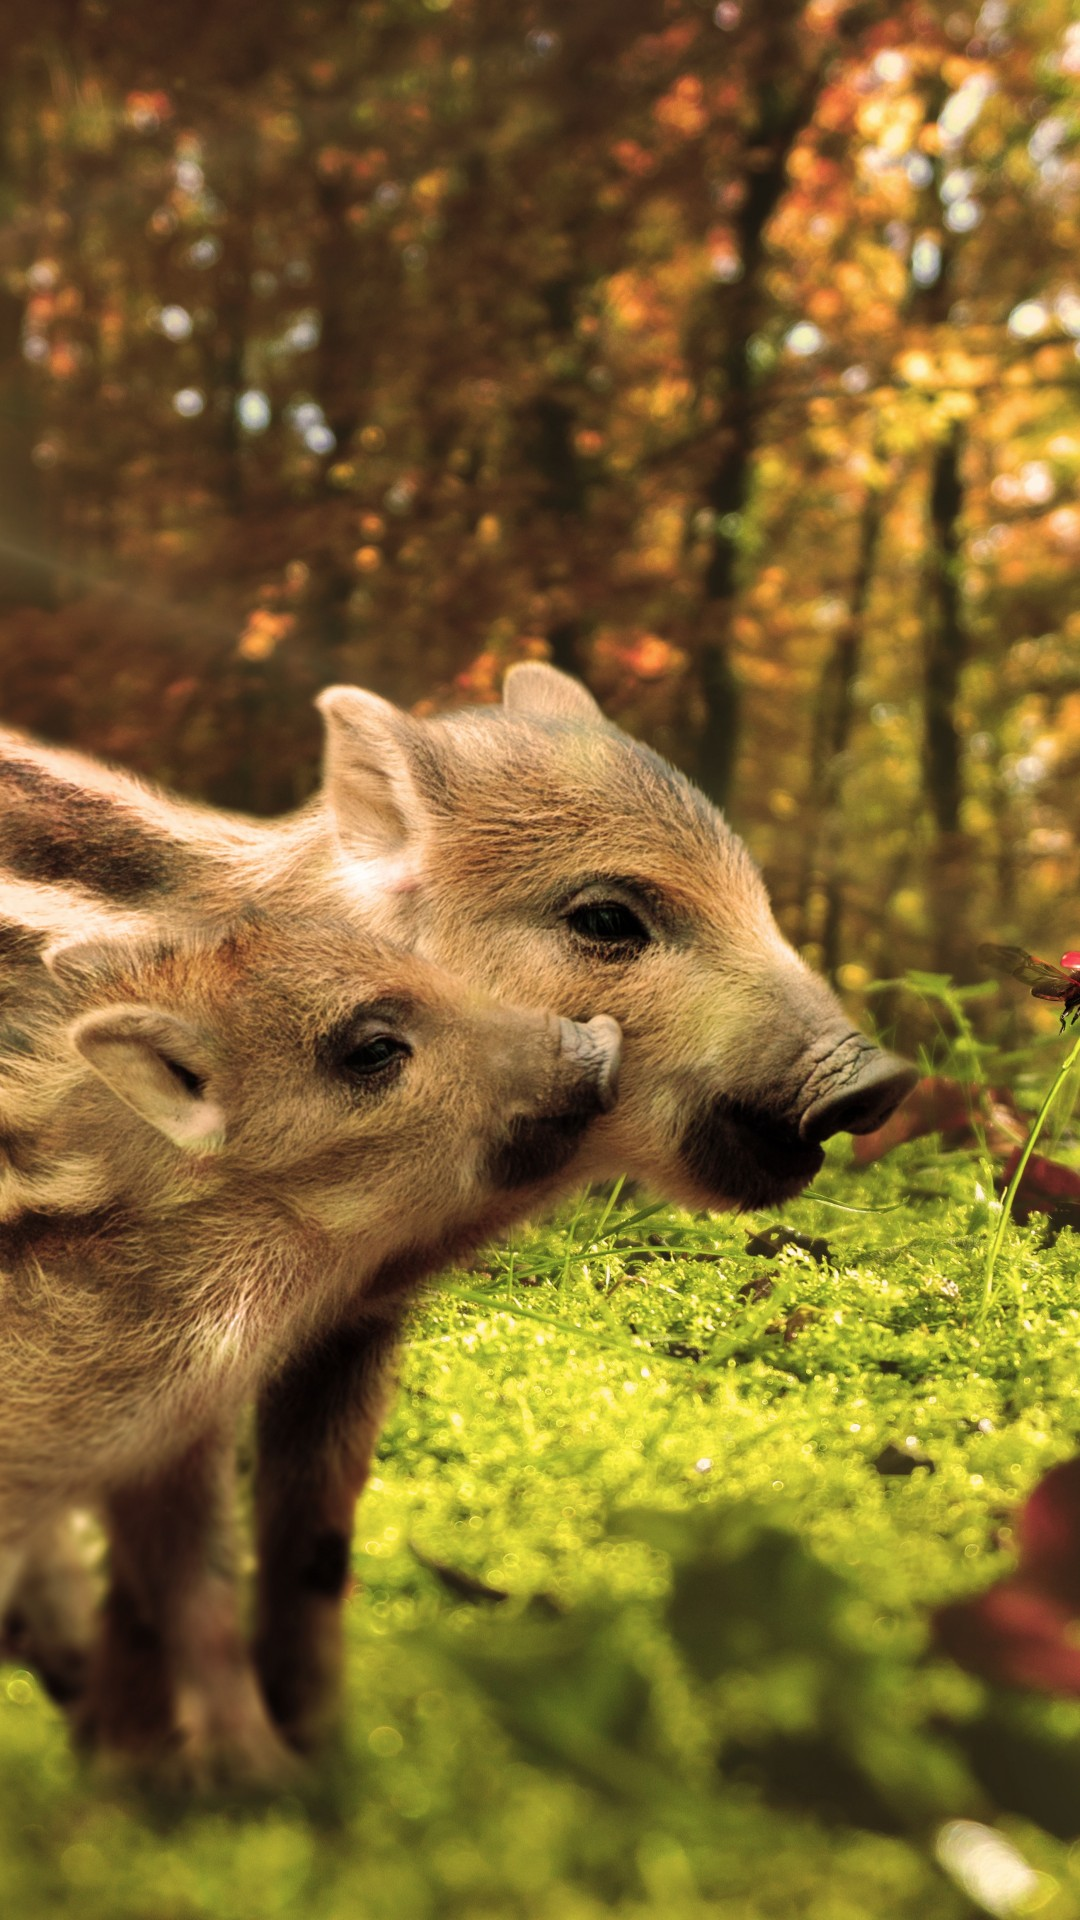 Cute Animal Wallpaper Hd Wallpaper Pig Funny Animals 7k Animals 18889